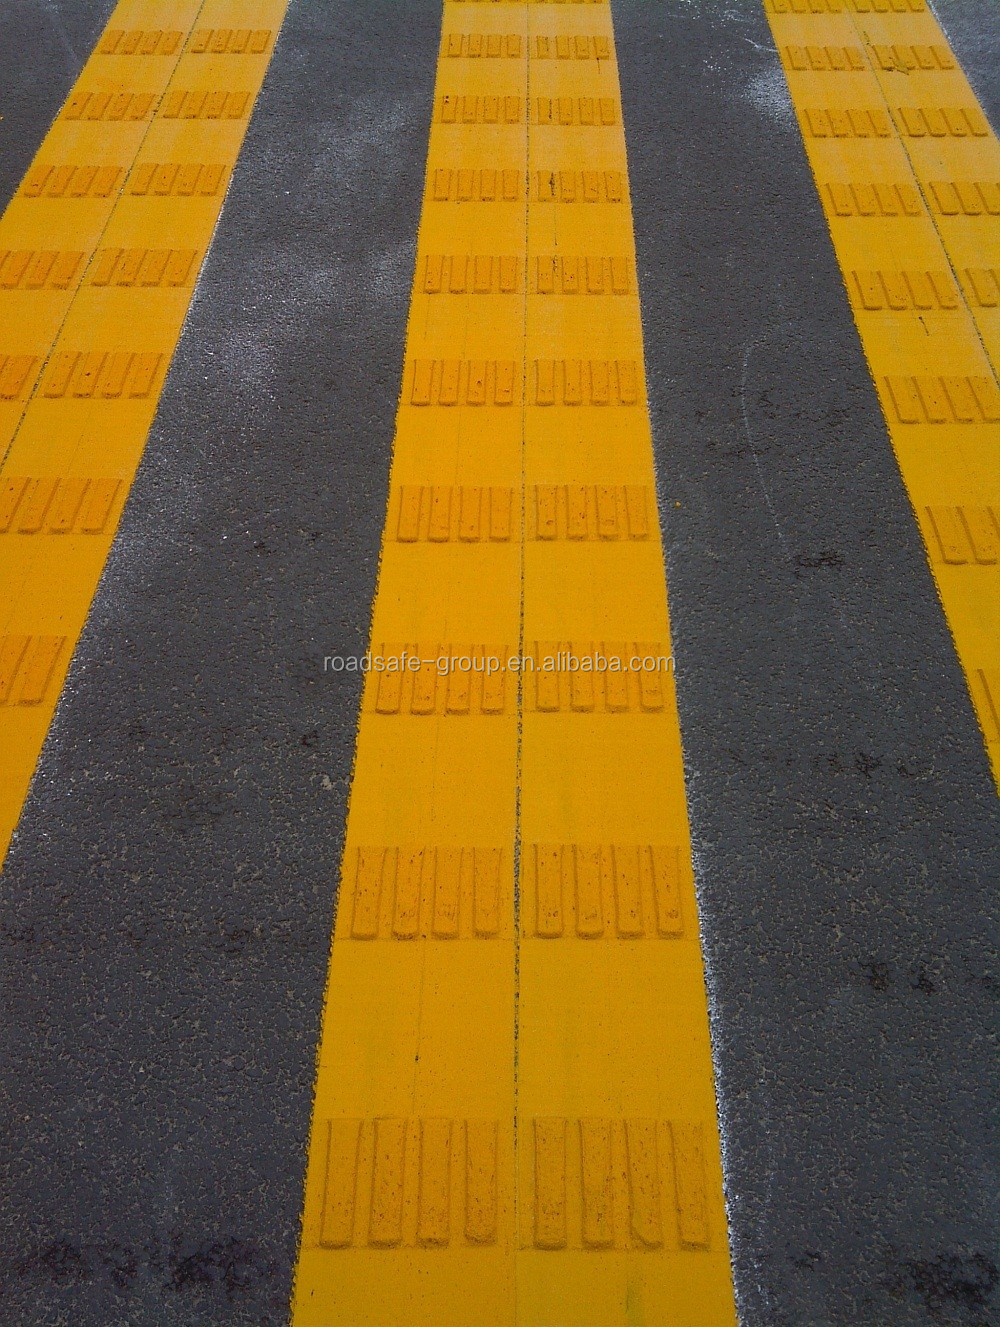 Highway Road Marking Paint  Reflective Thermoplastic Traffic Paint